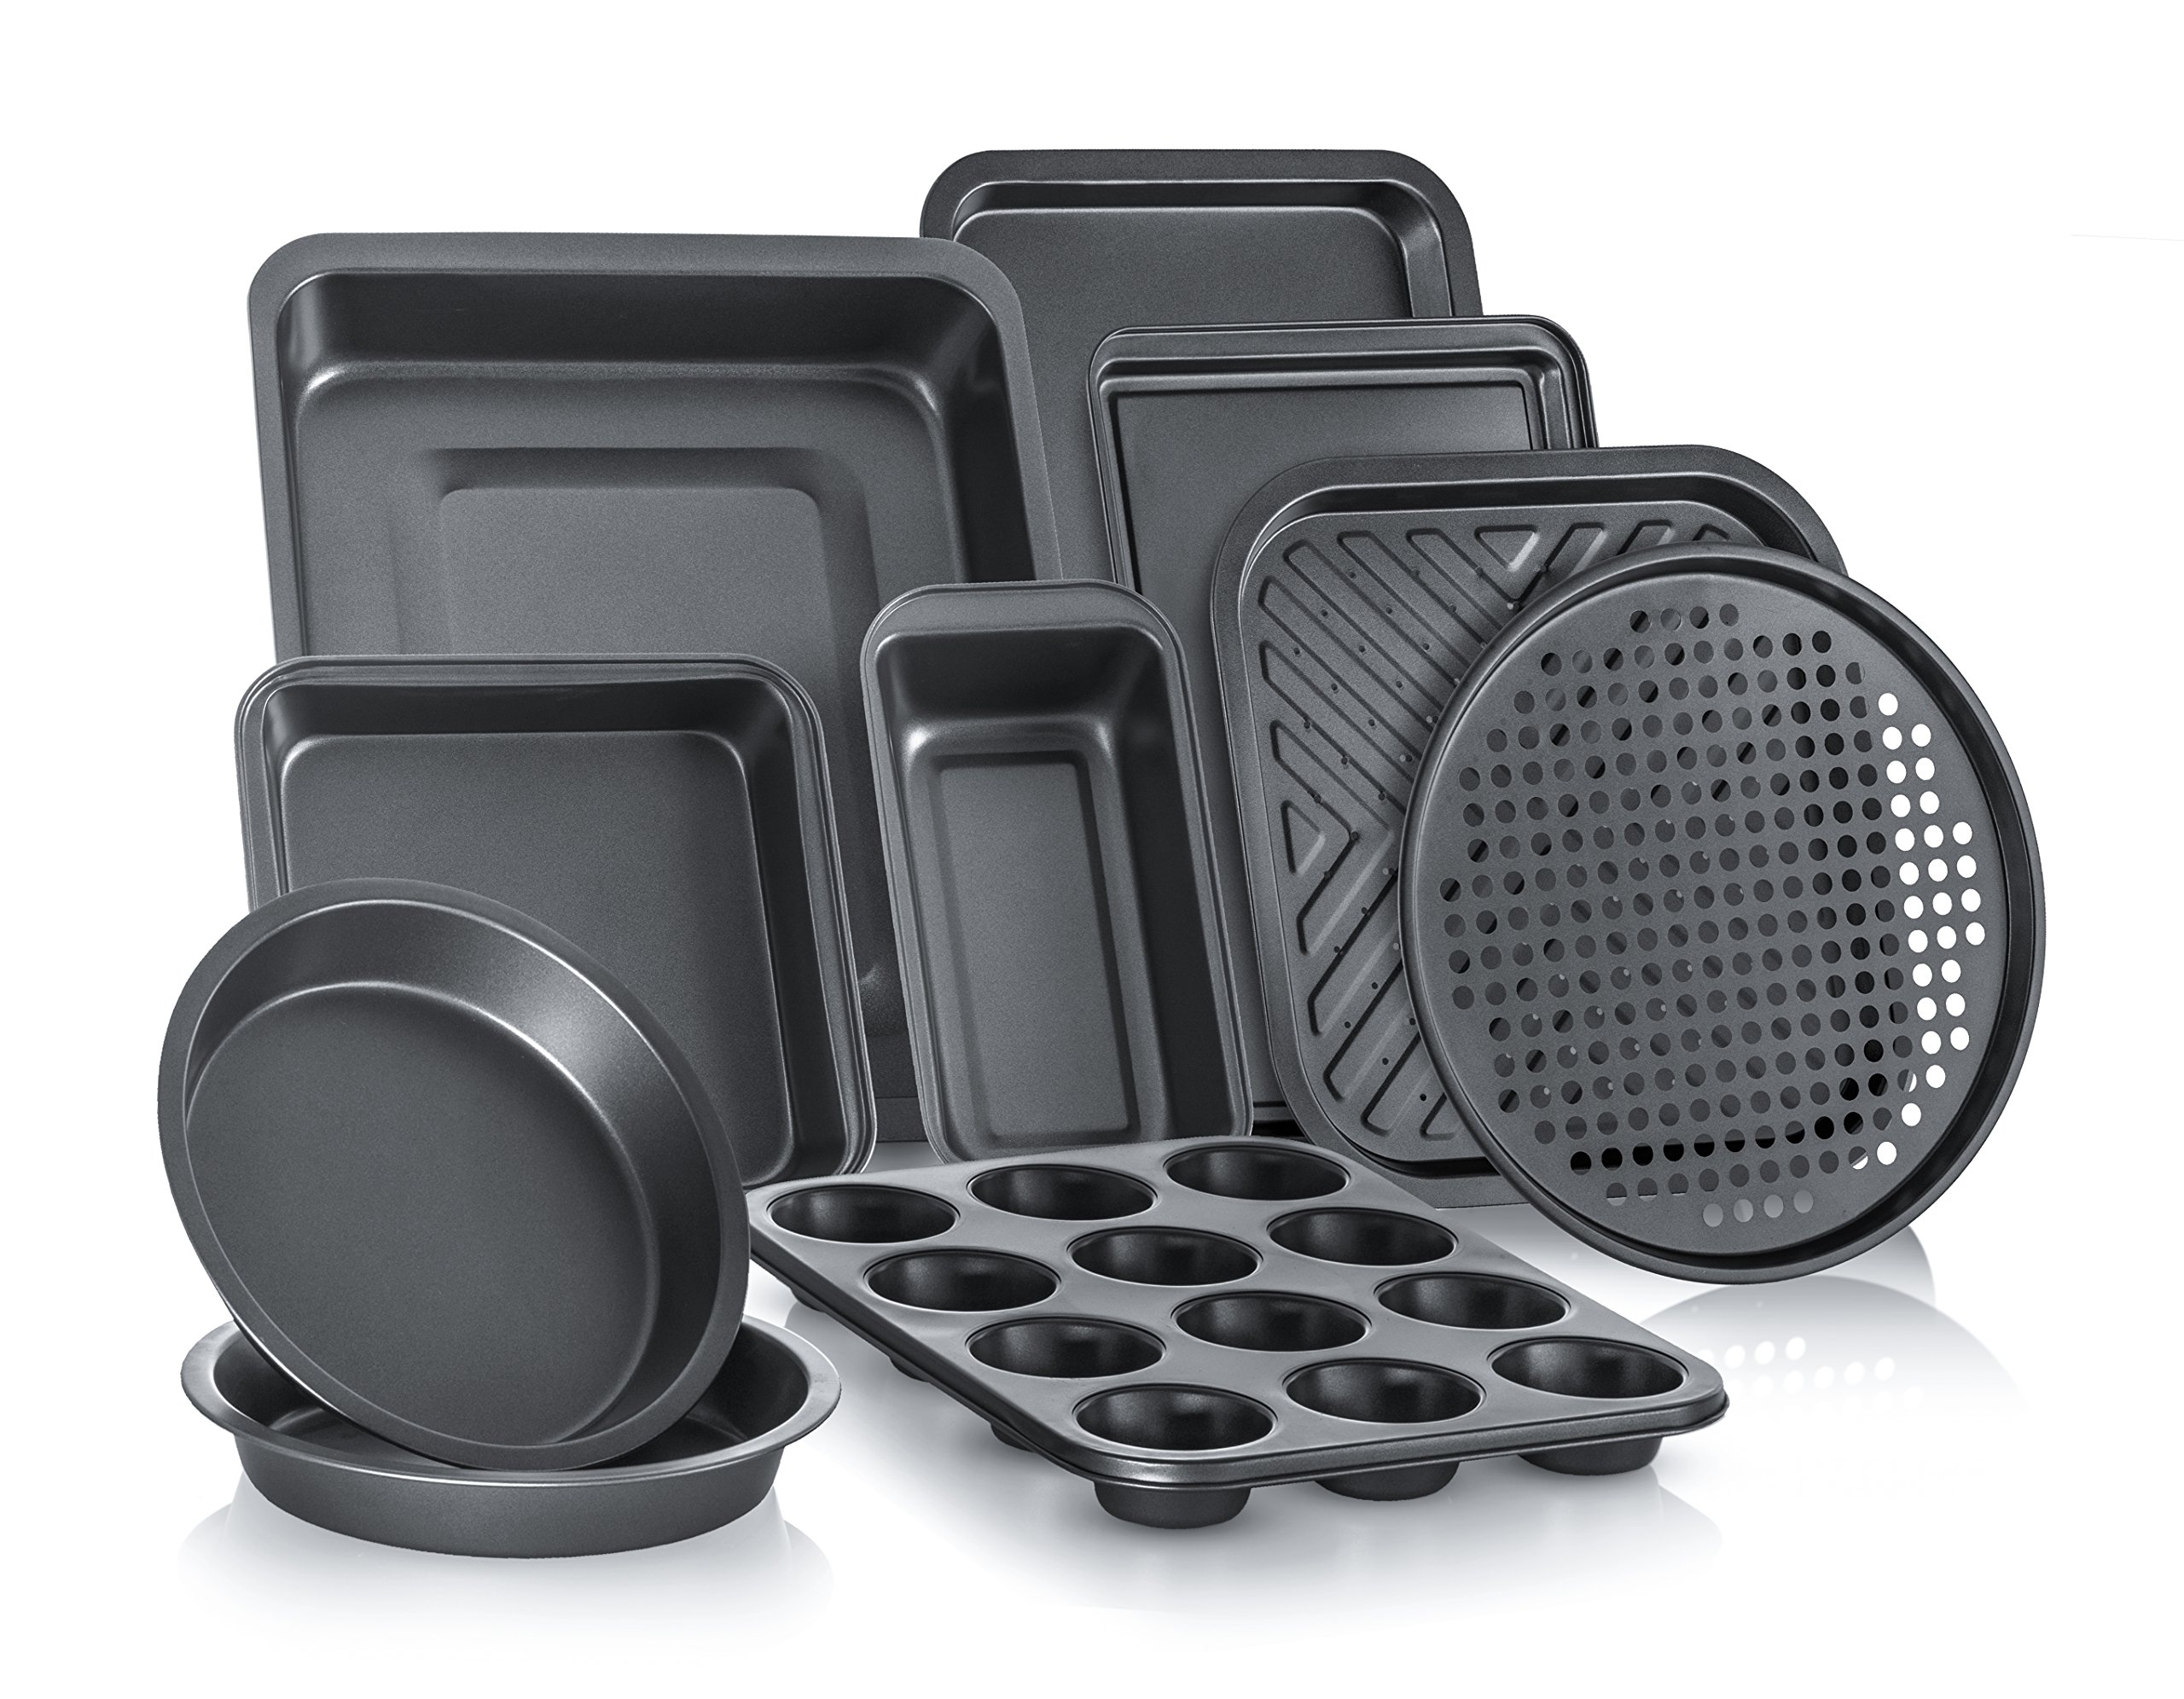 Perlli Complete Bakeware Set 10-Piece Non-Stick, Oven Crisper, Pizza Tray, Roasting, Loaf, Muffin, Square, 2 Round Cake Baking Pans, Large and Medium Nonstick Cookie Sheet Bake Ware for Home Kitchen by Perlli